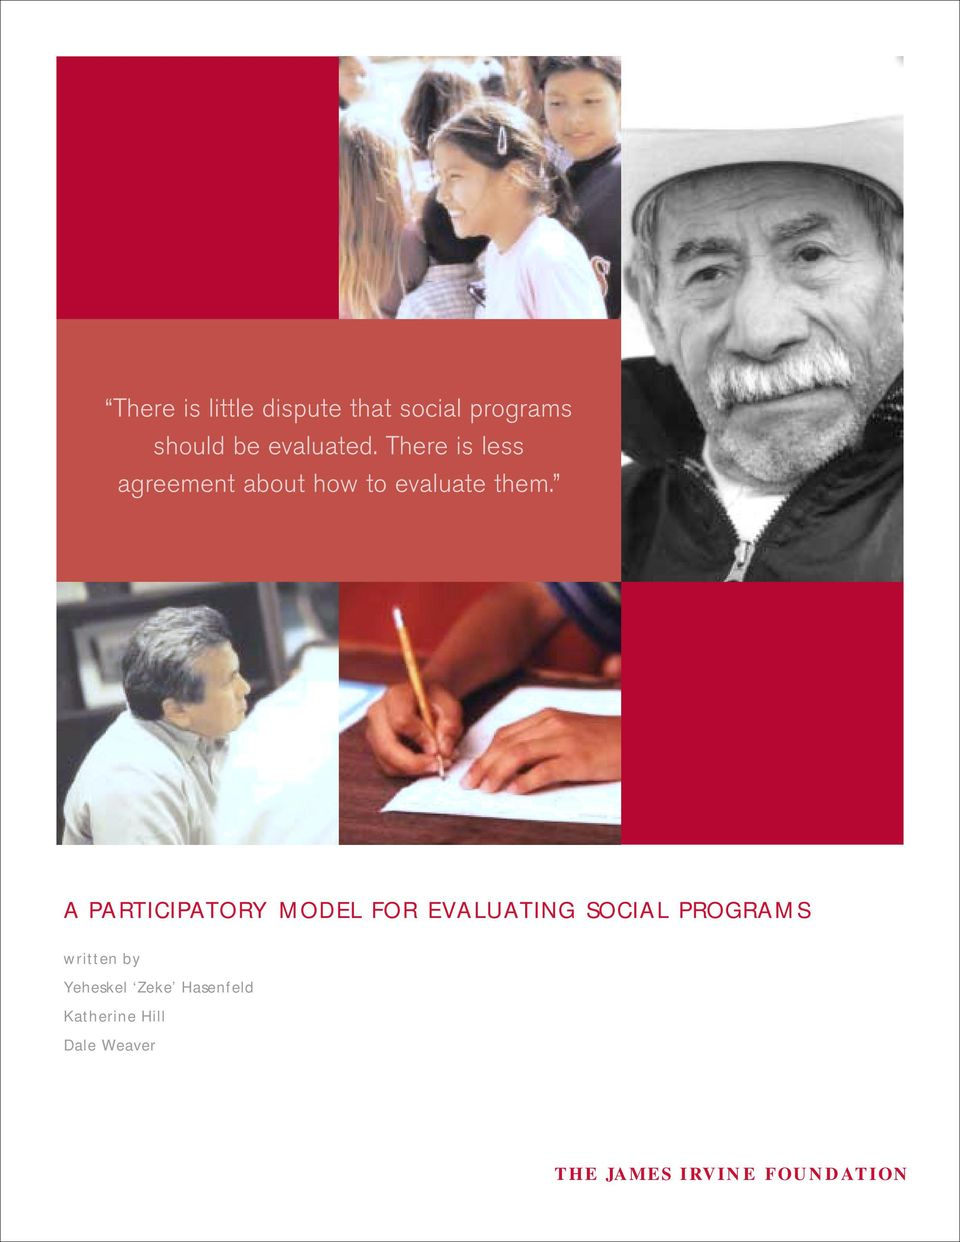 A PARTICIPATORY MODEL FOR EVALUATING SOCIAL PROGRAMS written by